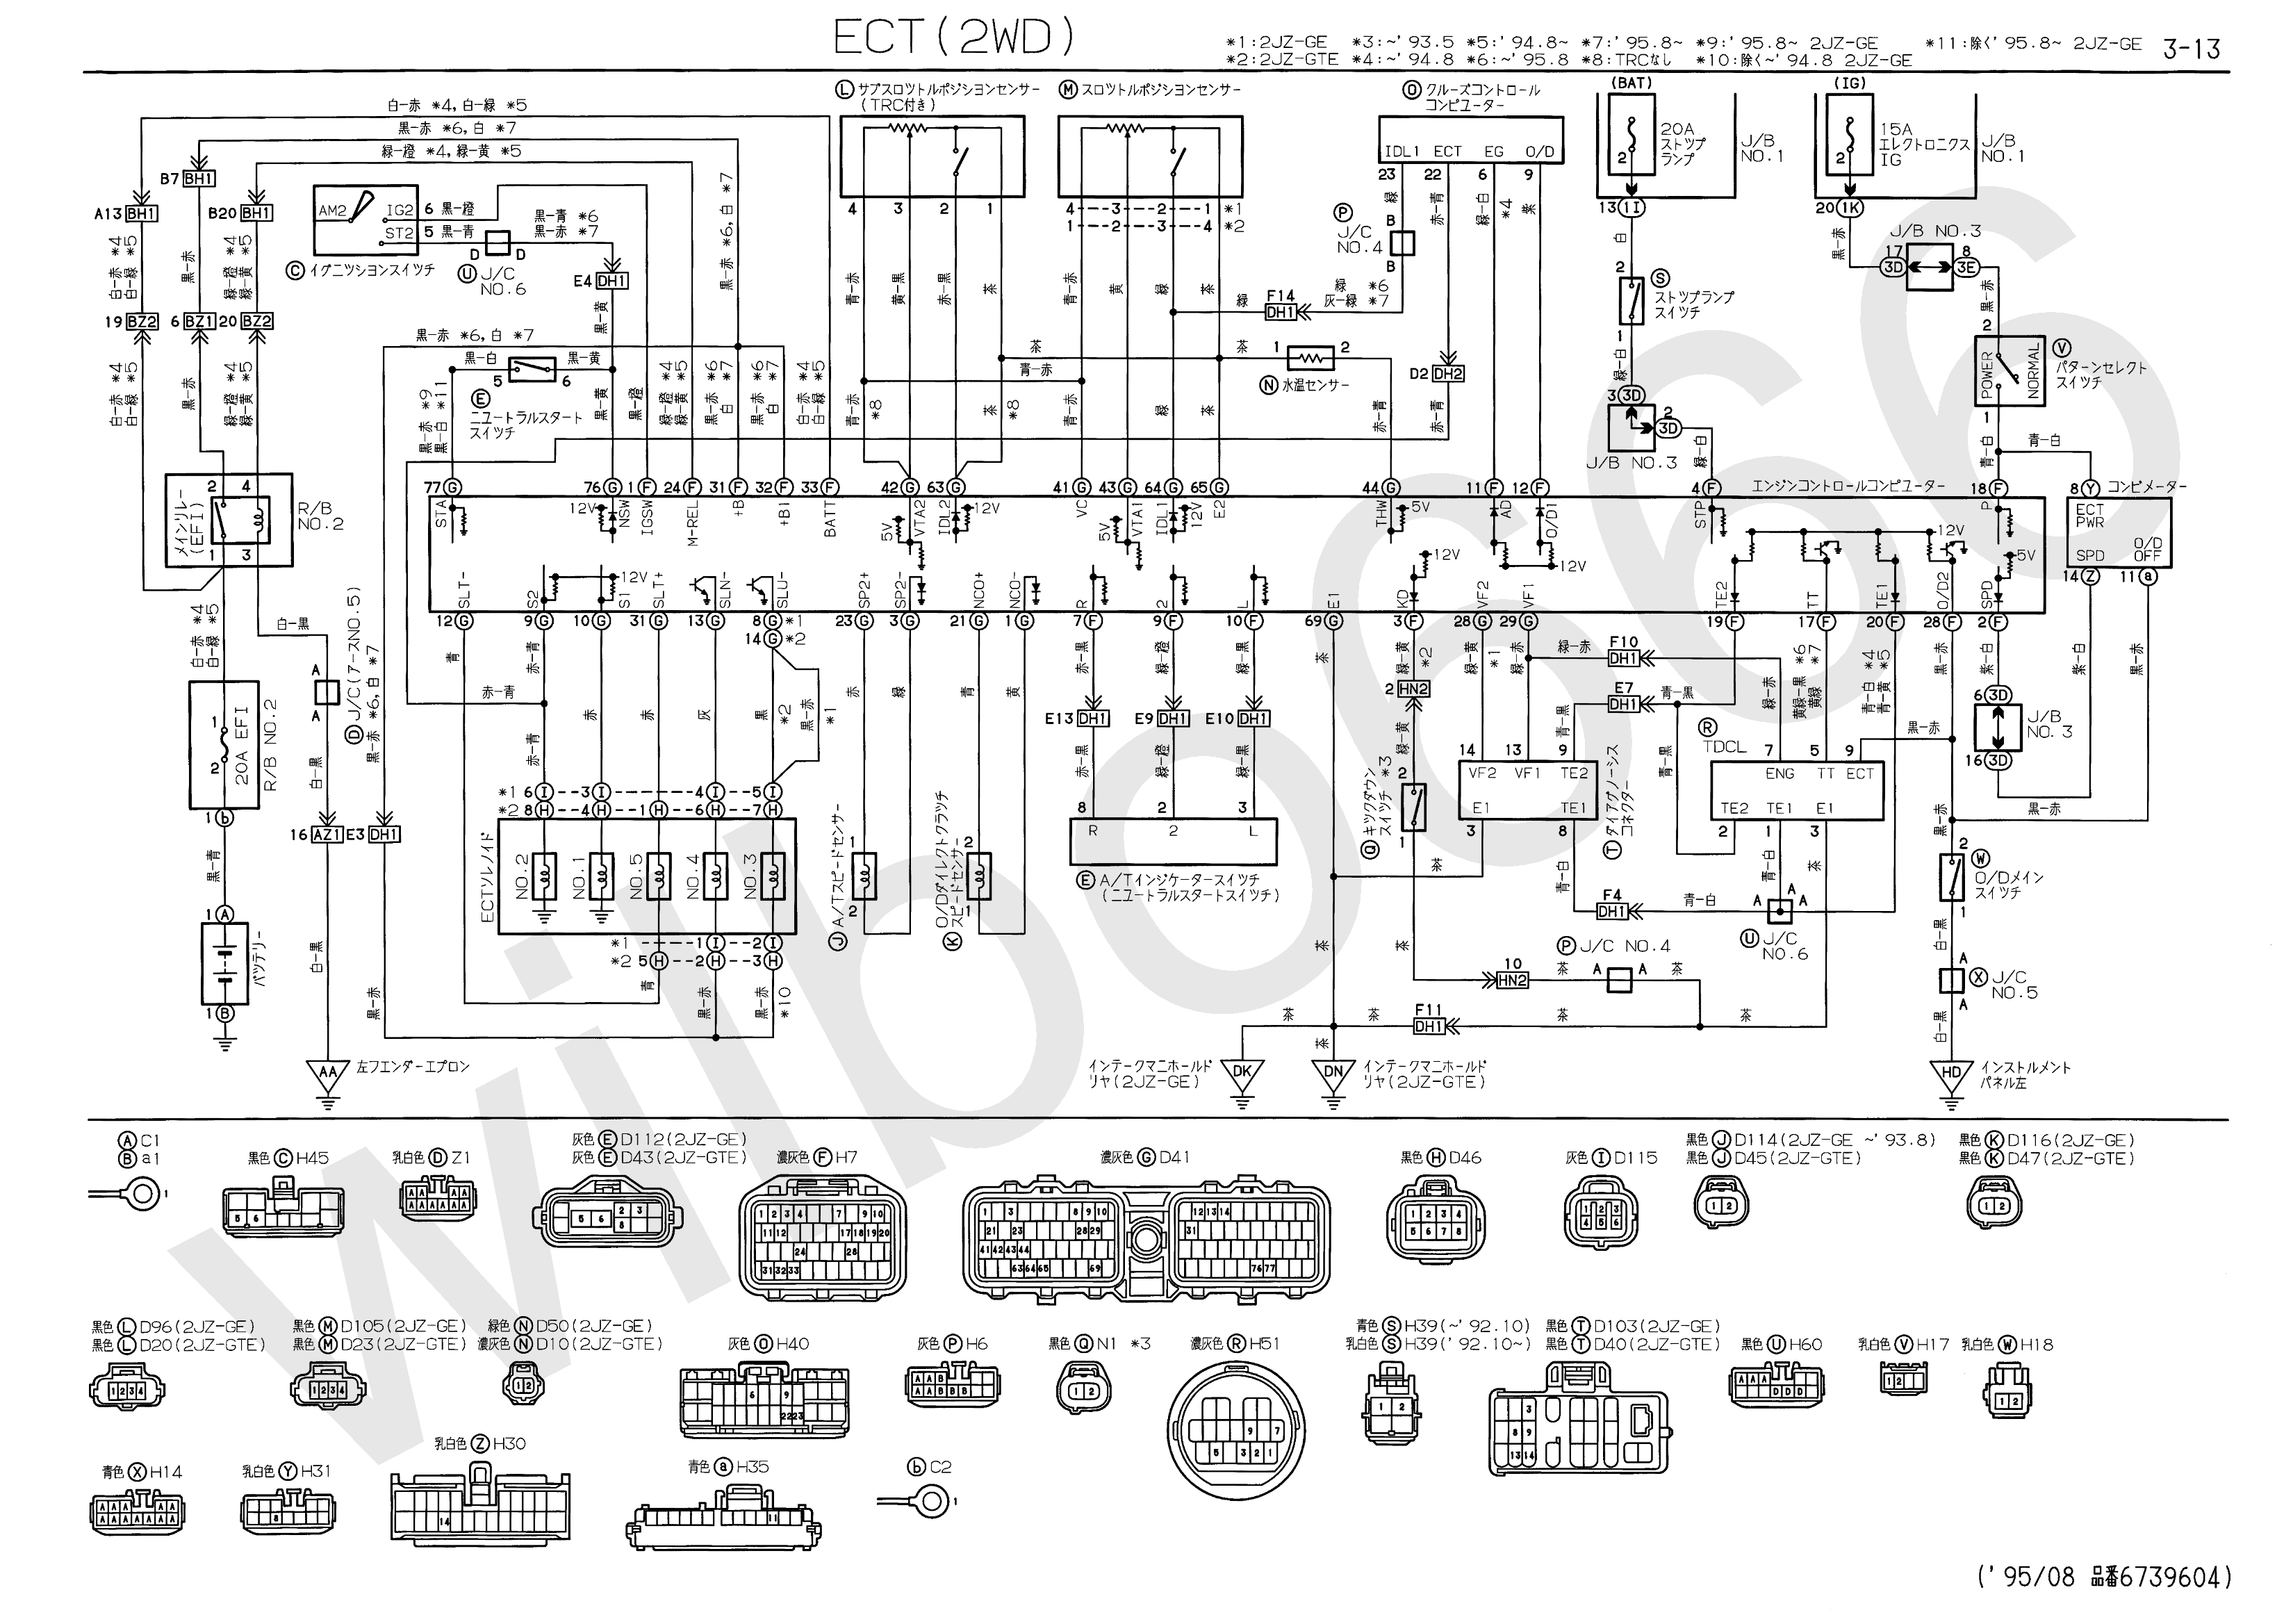 wiring diagram for 1993 lexus gs300 wiring diagrams rh boltsoft net 1993 Lexus GS300 Specs Lexus GS300 Air Suspension